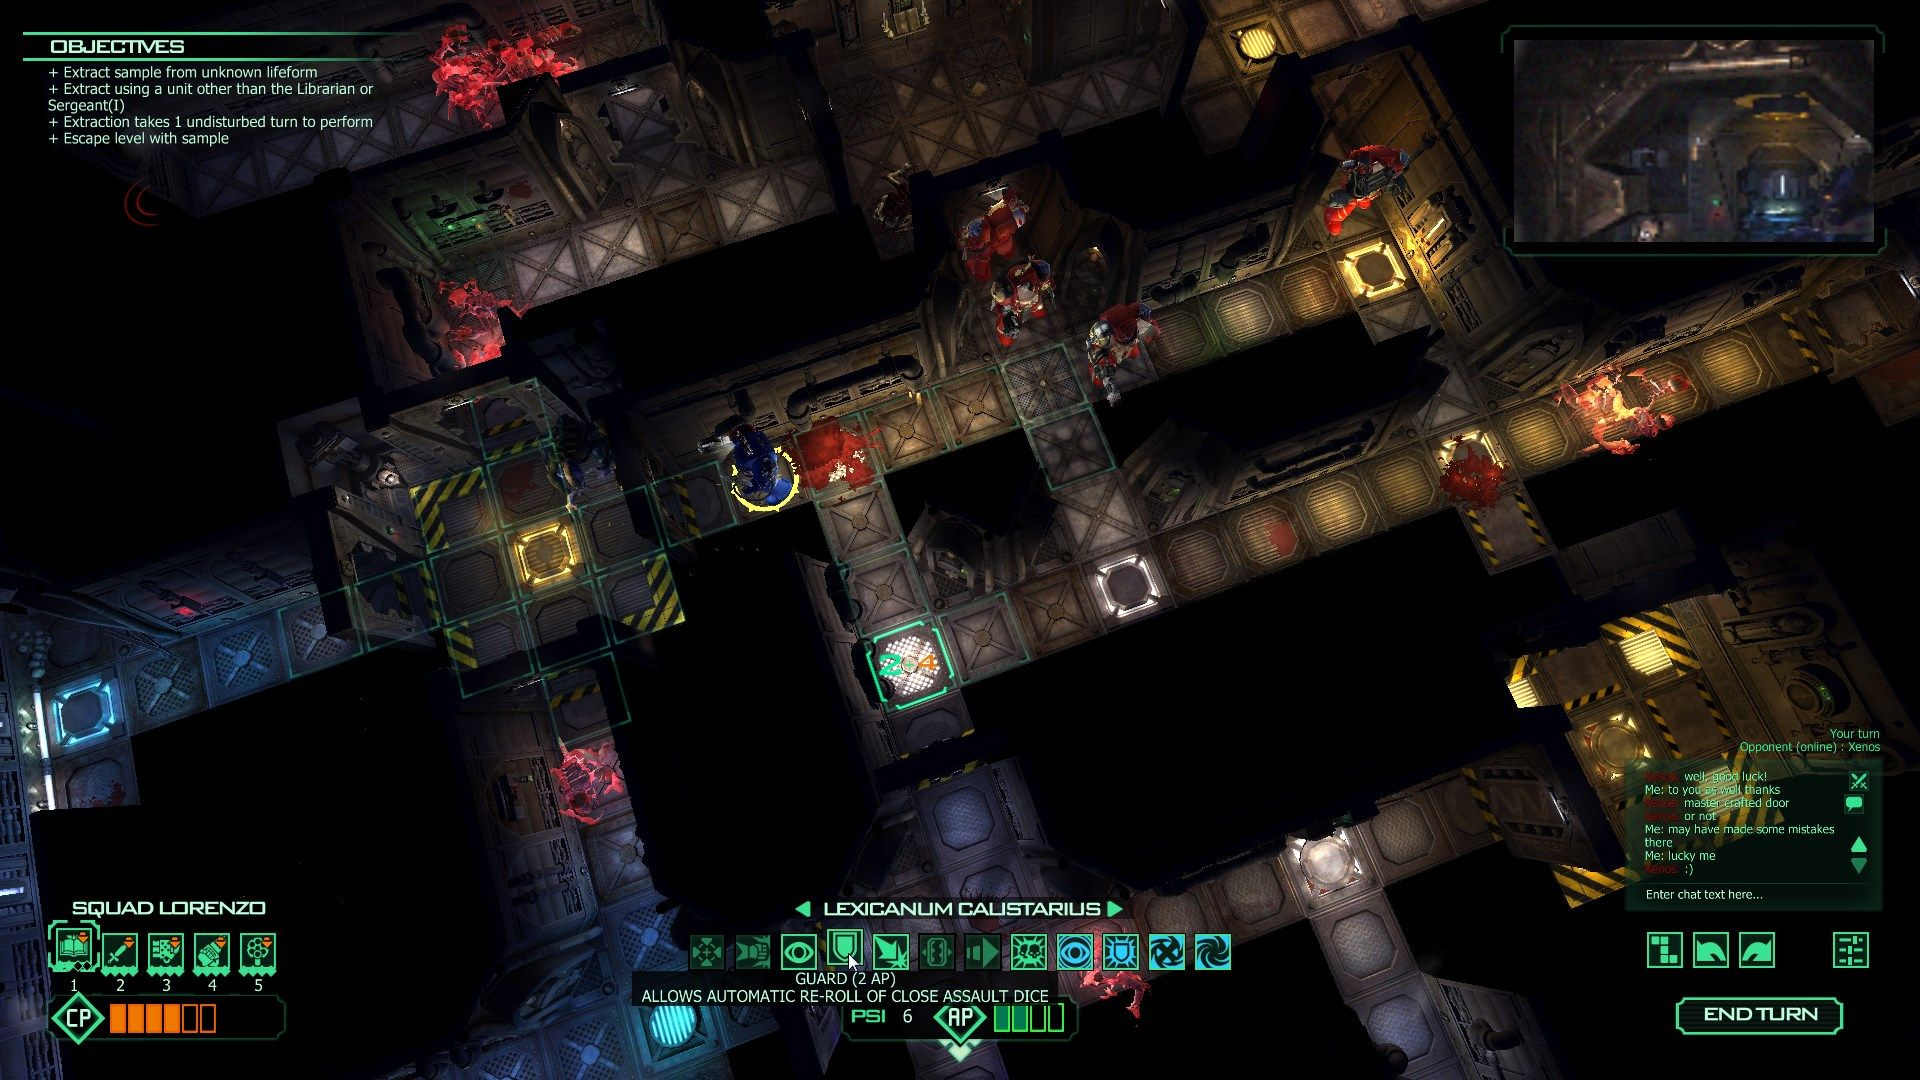 Hlife Hotdog's Blog - The Ravings of a Stickman: Review: Space Hulk